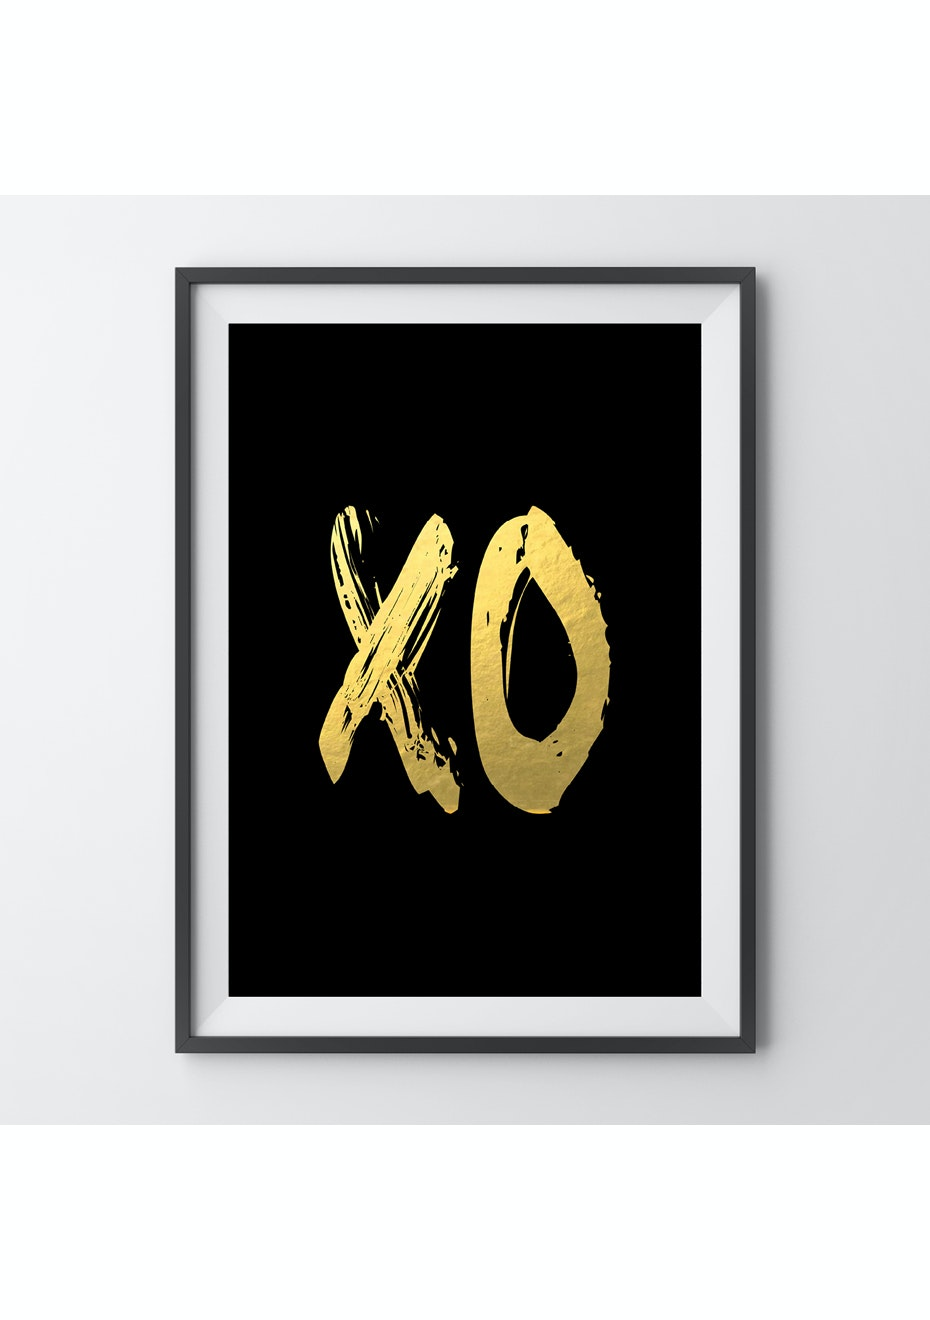 Simply Creative - Xo Black - A4 Gold Foil Print